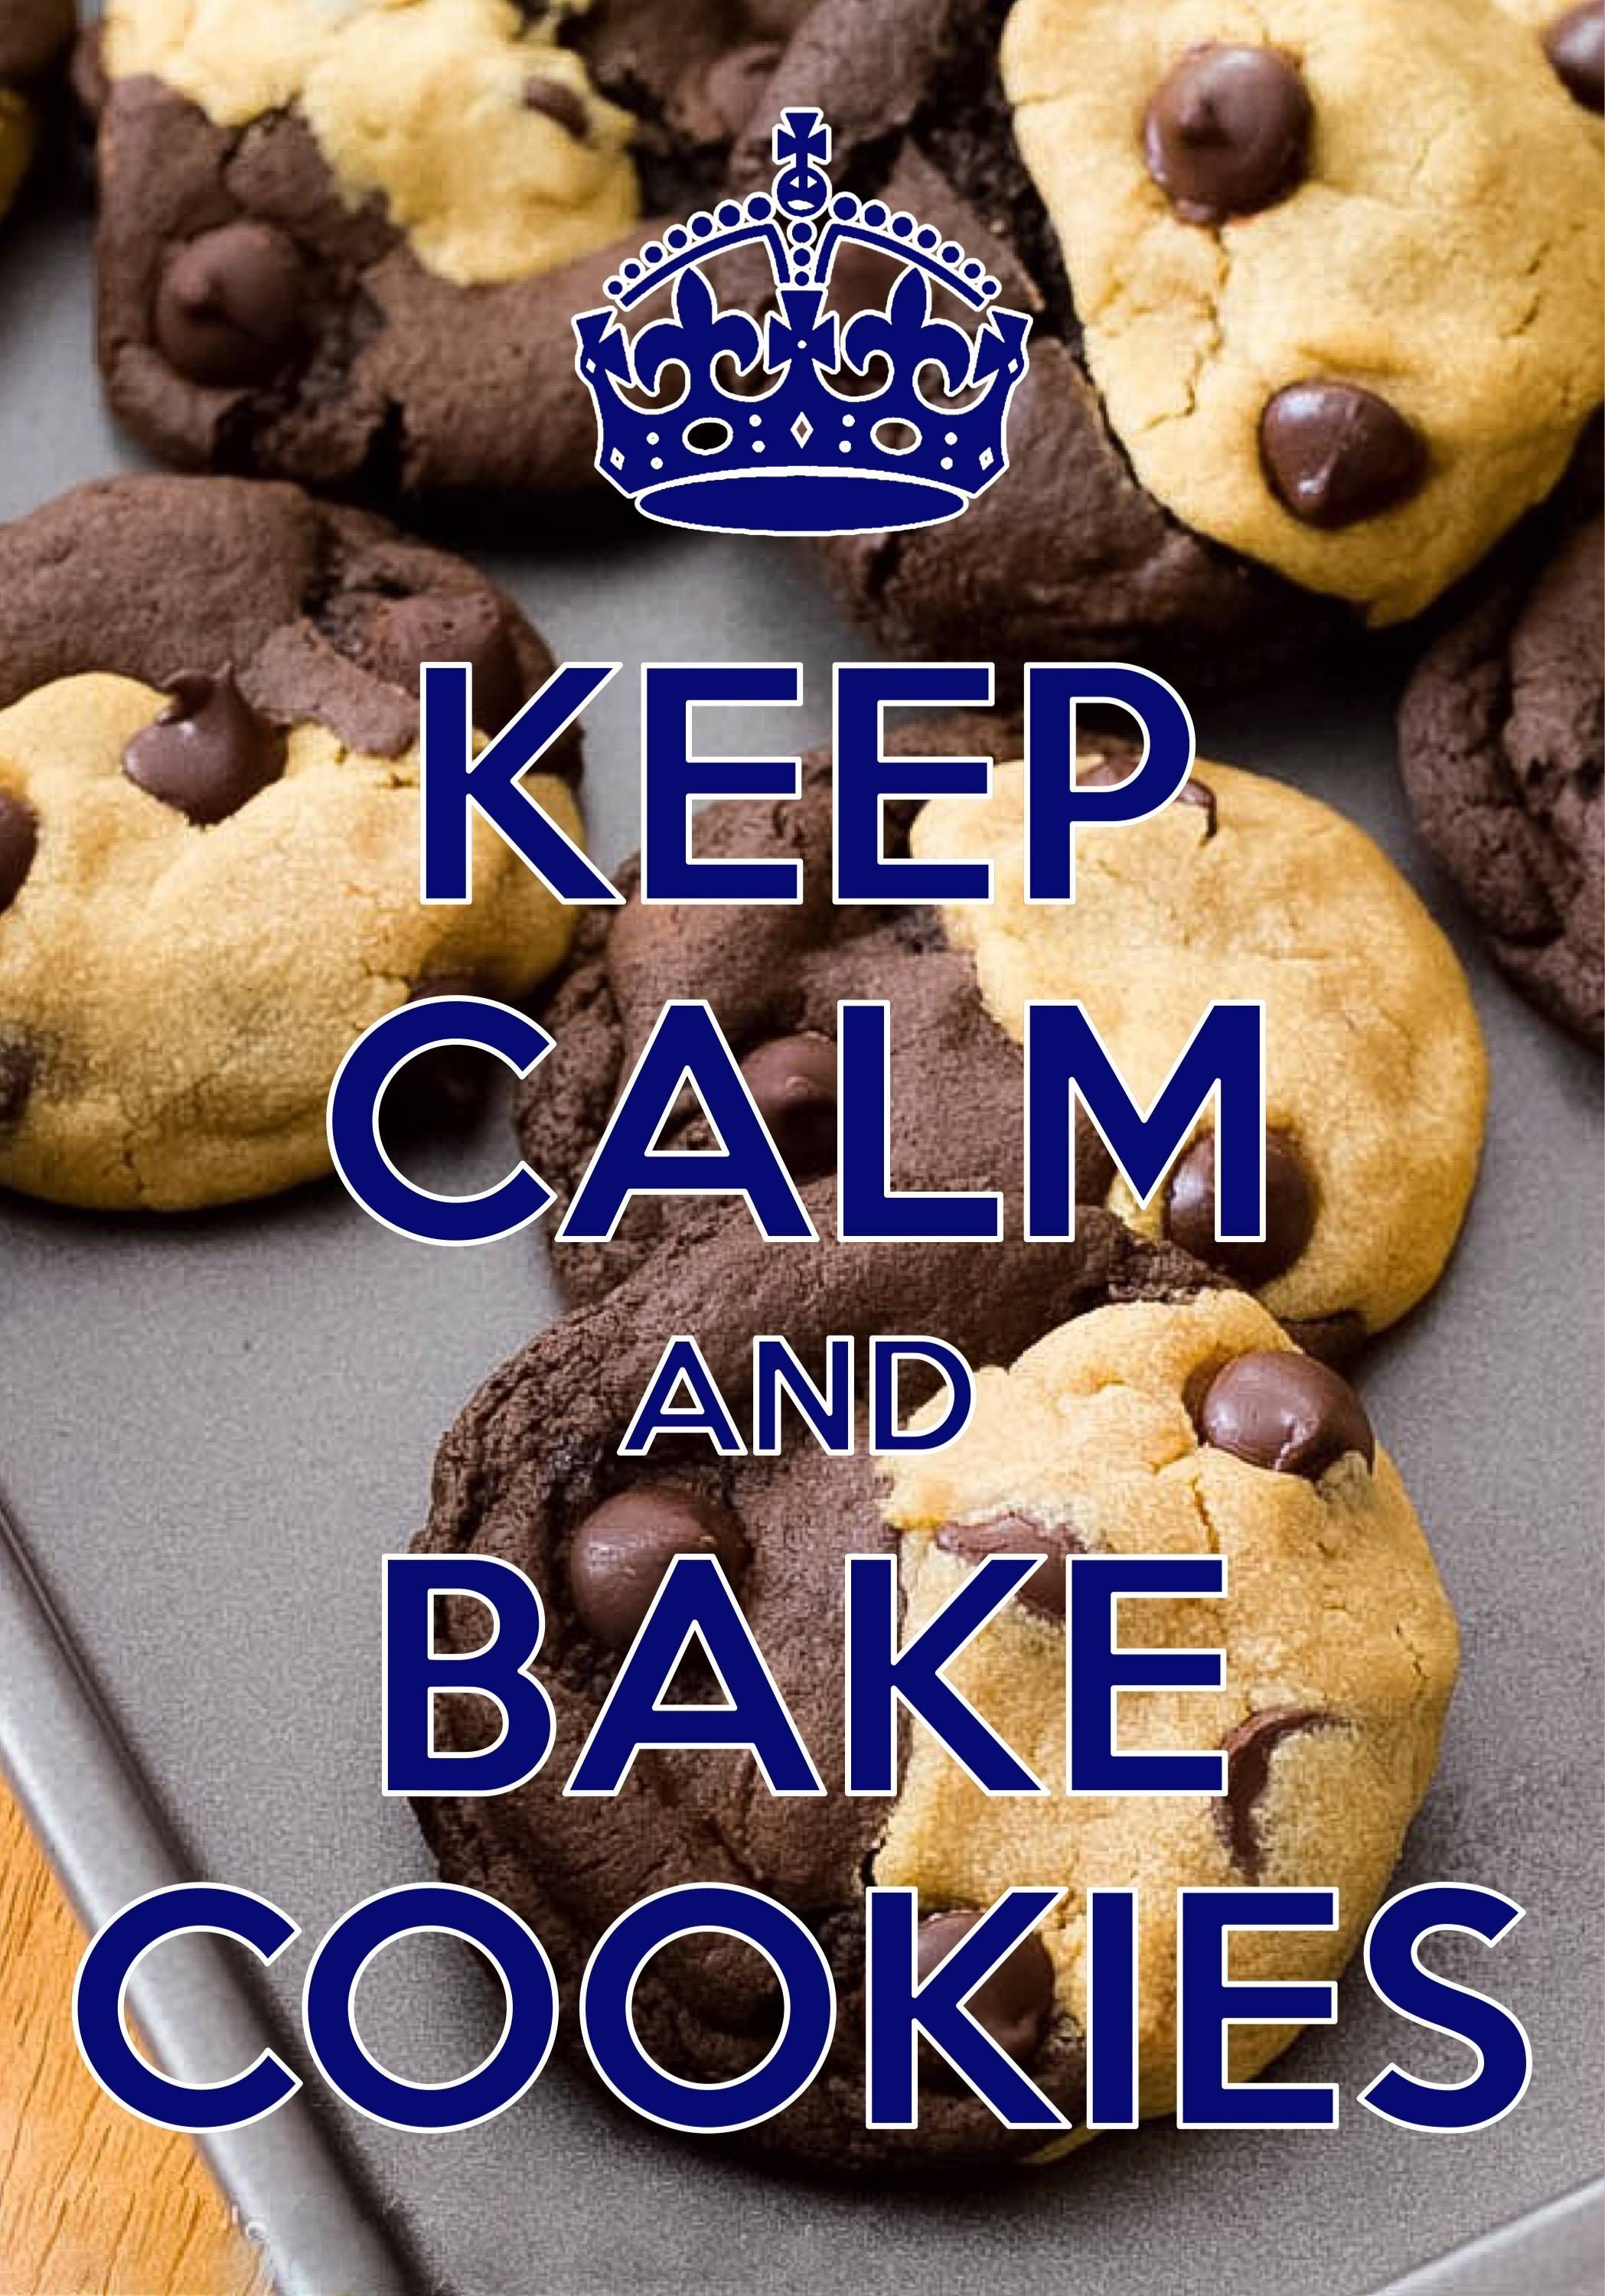 Keep calm and love winnie pooh keep calm and carry on image - Keep Calm And Bake Cookies Created With Keep Calm And Carry On For Ios